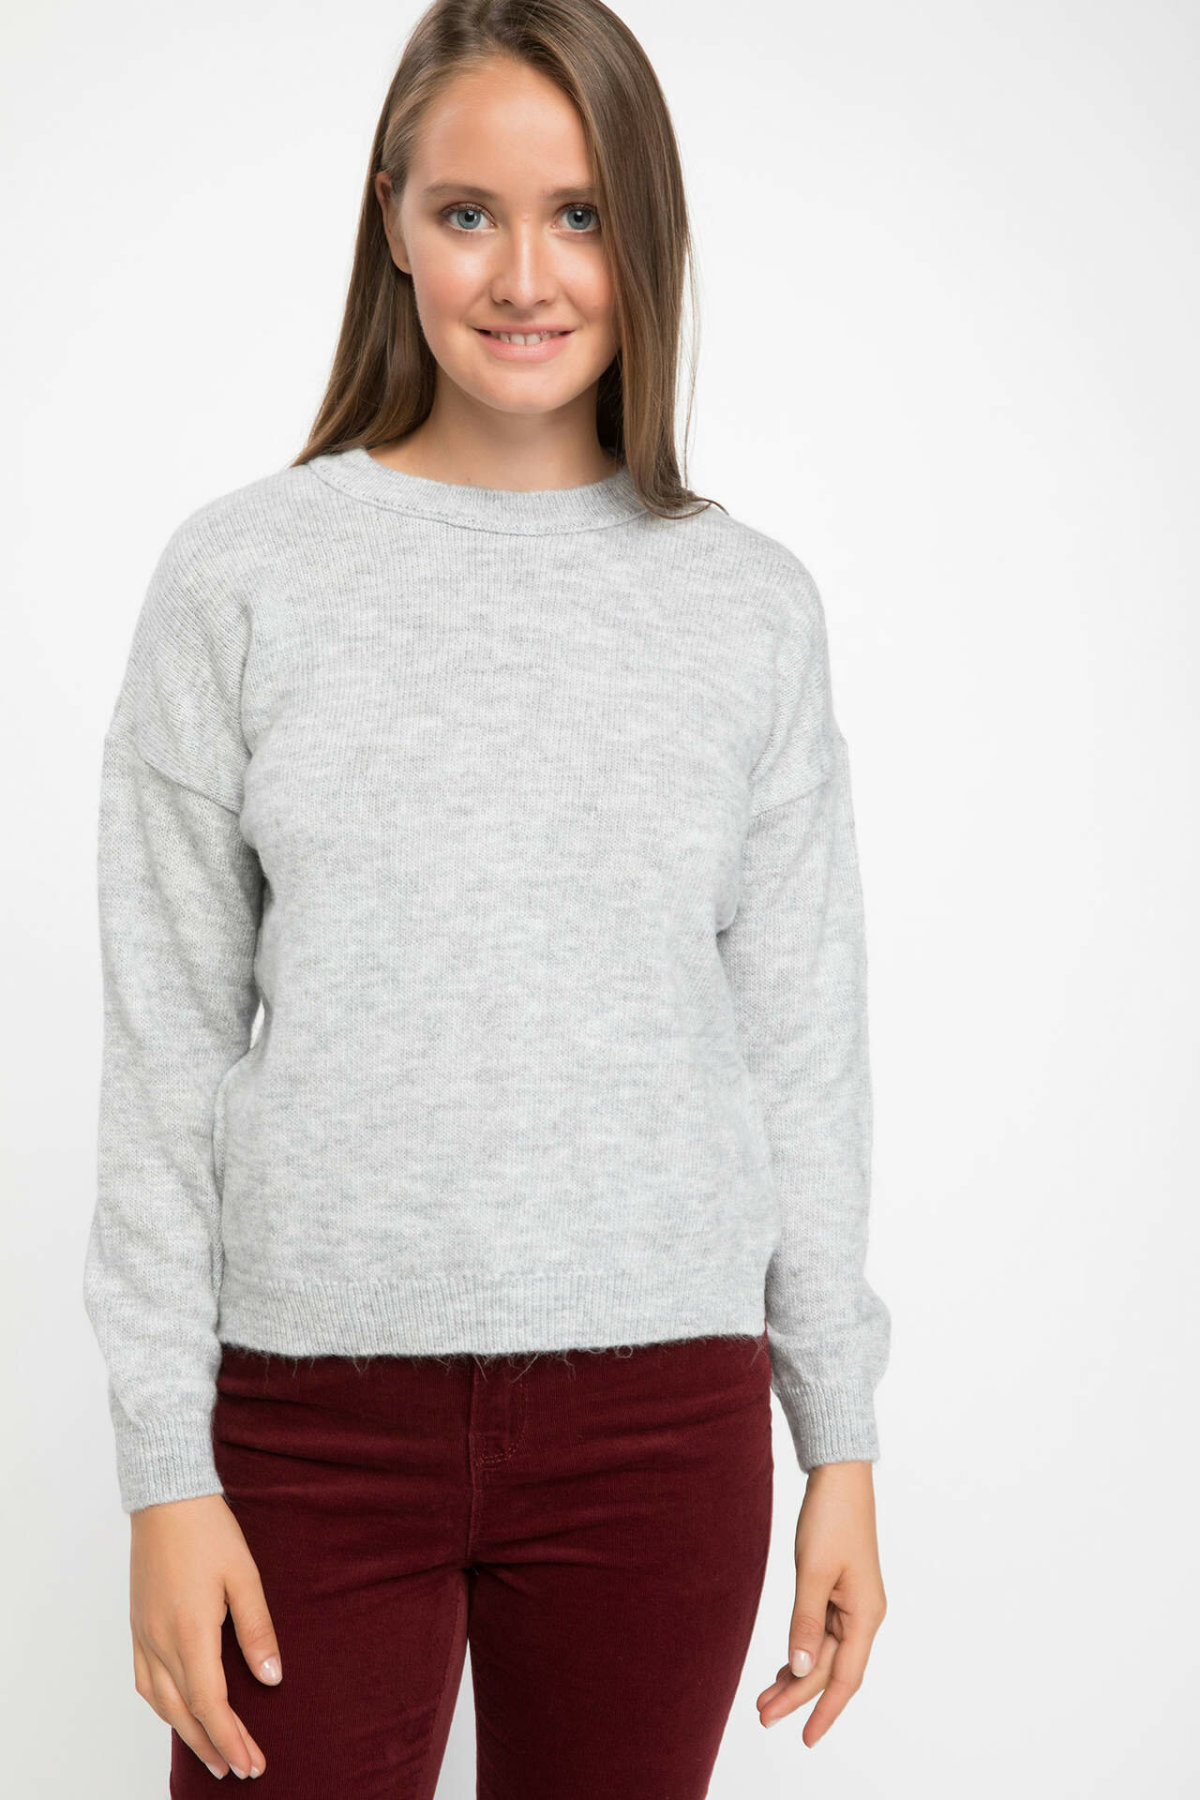 DeFacto Women Solid O-neck Pullovers Casual Simple Pullover Long Sleeves Women Jumpers New-J2148AZ18WN-J2148AZ18WN